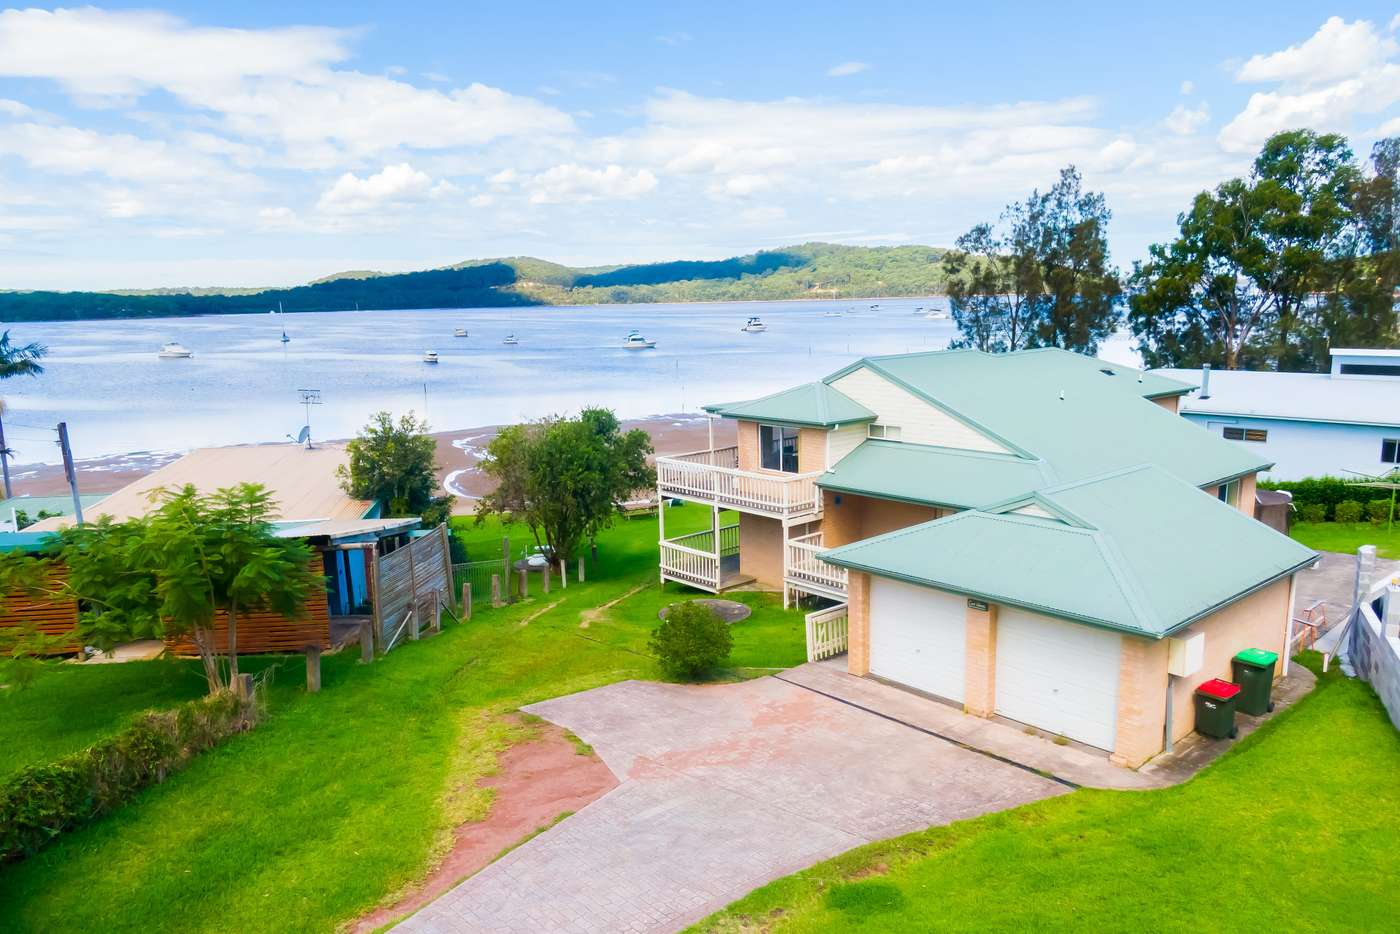 Main view of Homely house listing, 24 Merriwa Boulevard, North Arm Cove NSW 2324